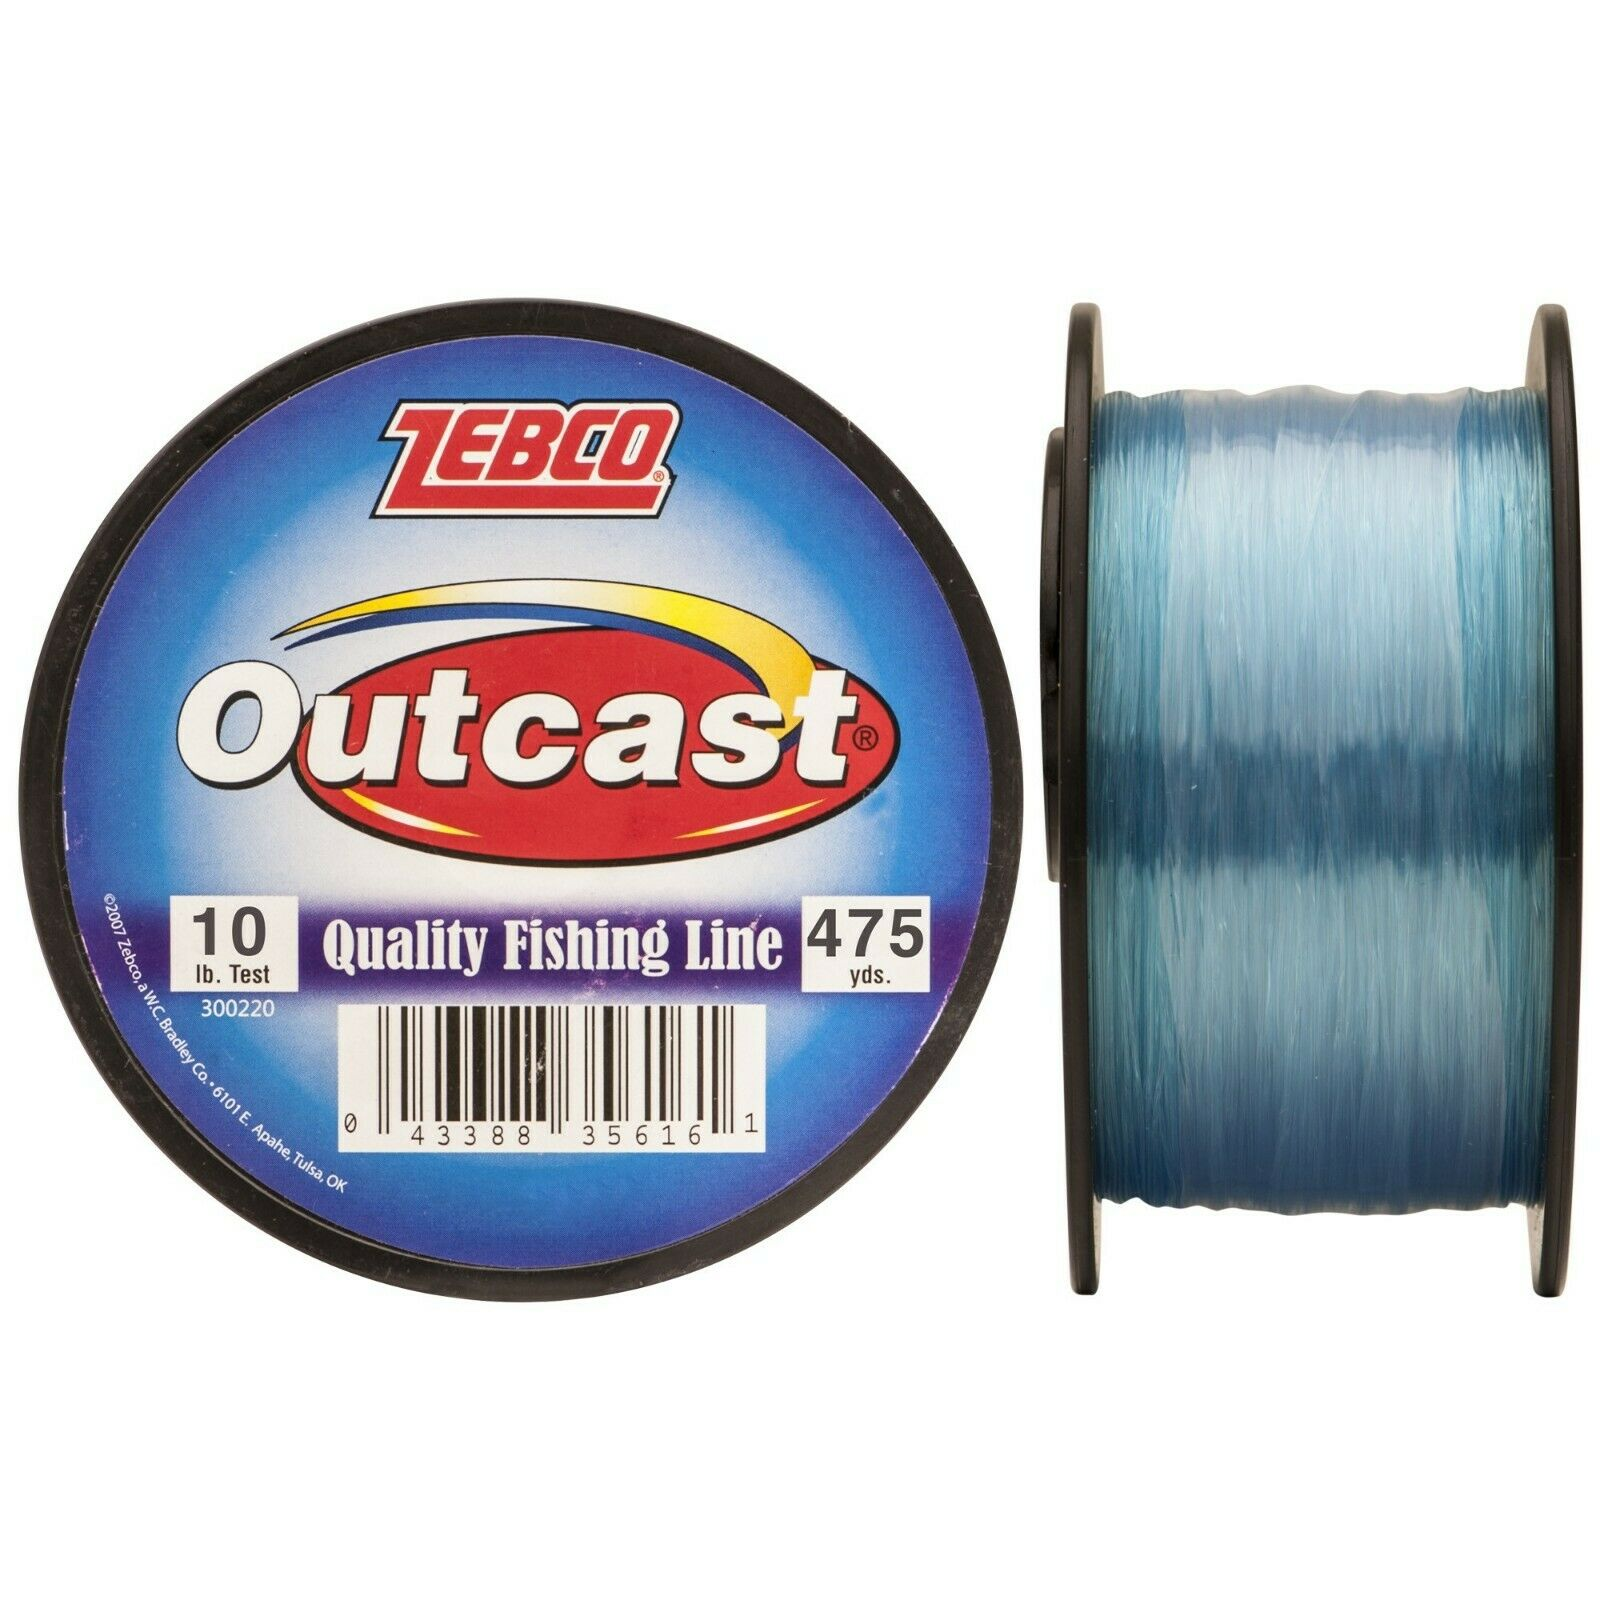 Fishing Line - 10 LB, 475 yards - Broadened Horizons Direct